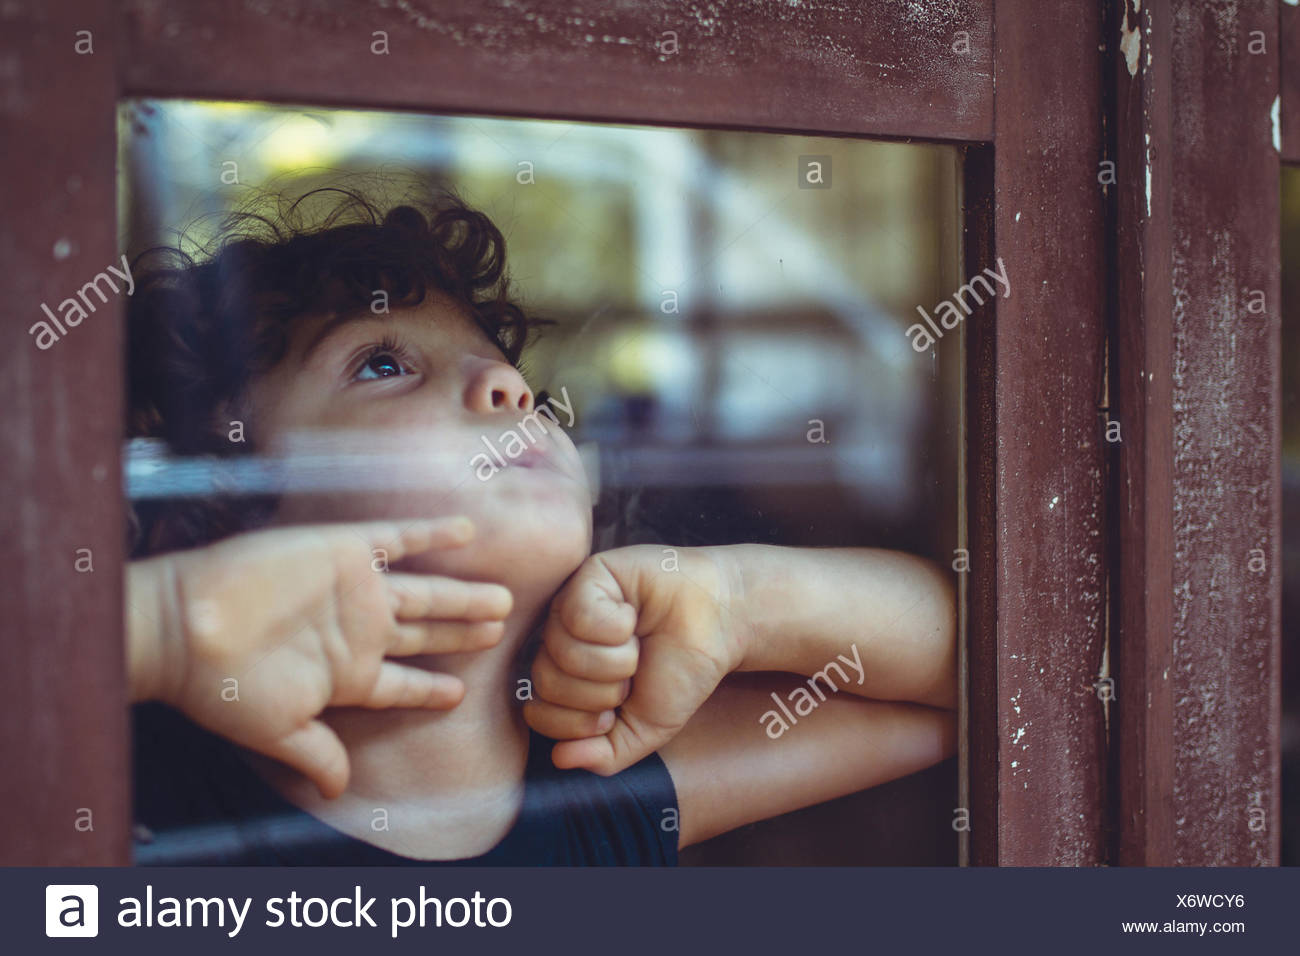 Boy looking out of a window - Stock Image